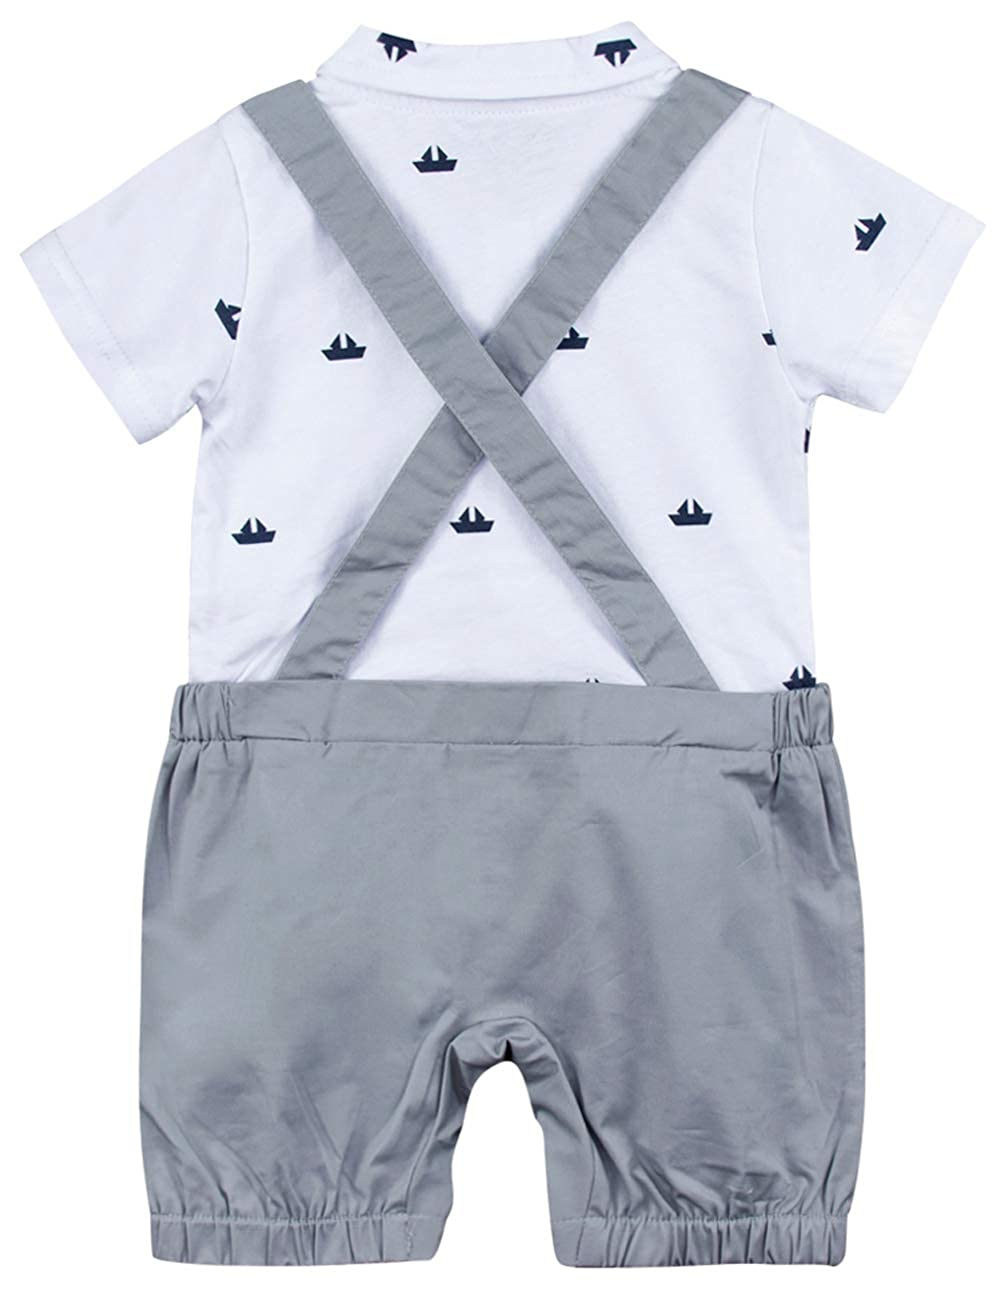 A/&J DESIGN Baby Boys Gentleman Romper Surspender Overall with Bowtie